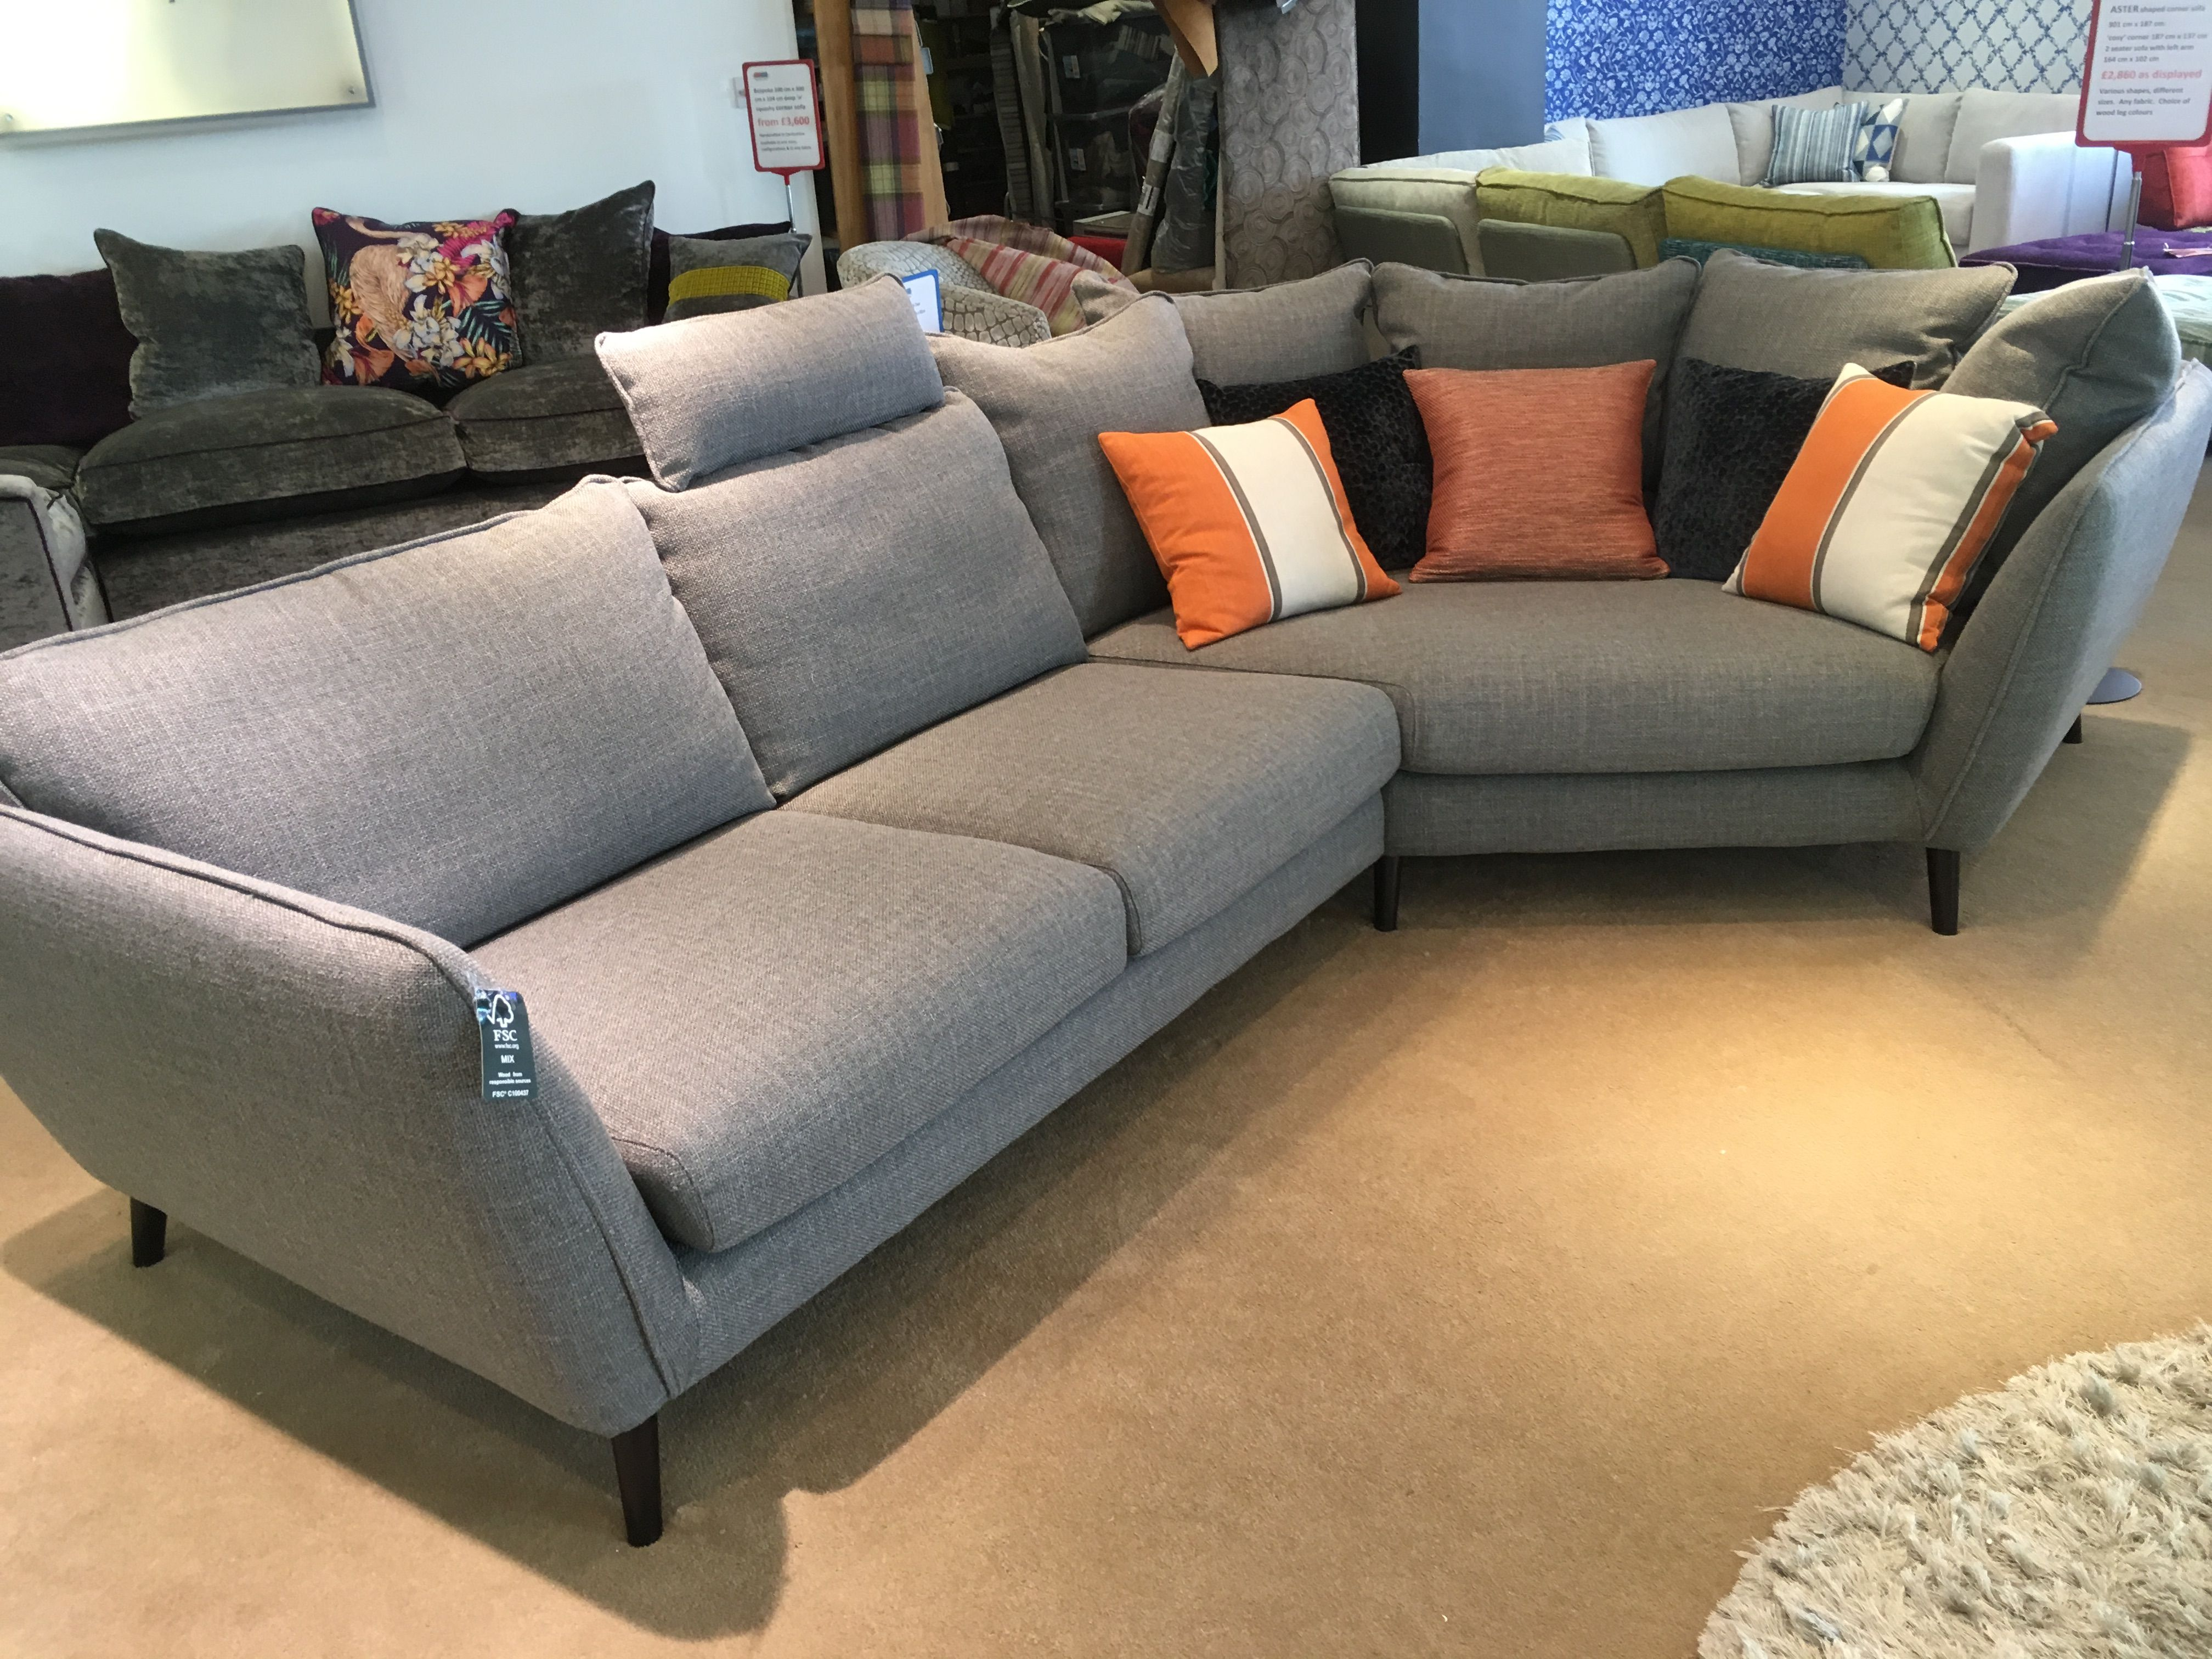 Cosy Corner Right And 2 Seat Sofa Left 301 Cm Wide X 187 Cm Longest Measurement Dark Wood Legs Optional Headrest And Scatter Cosy Corner Scandi Sofa Sofa